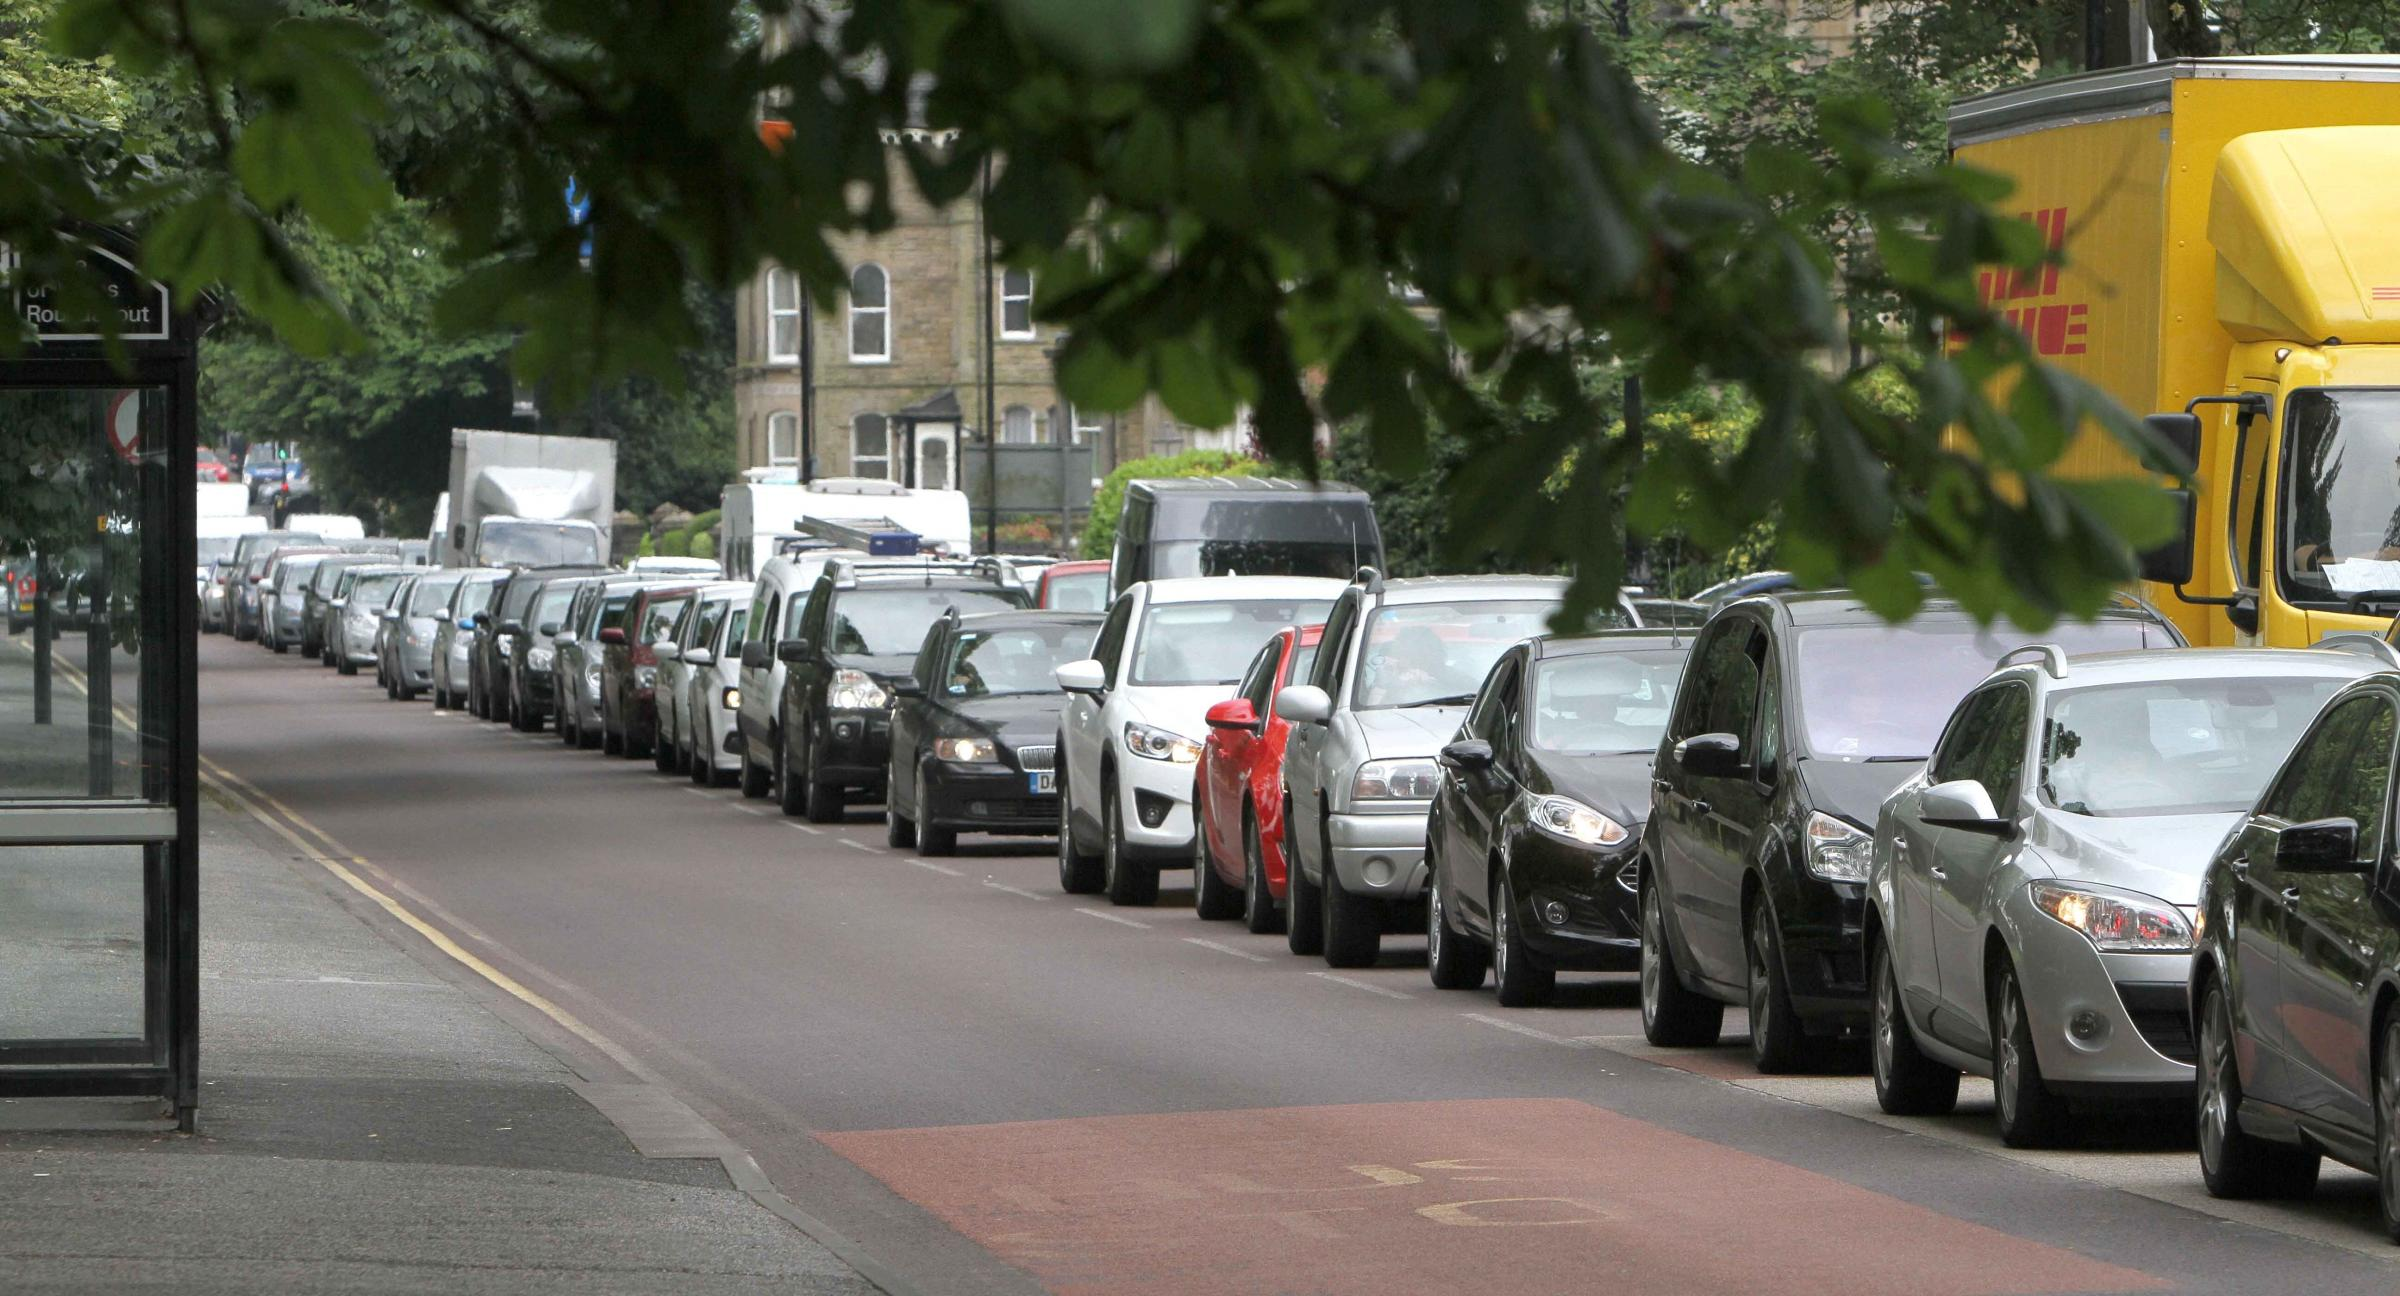 Are you stuck in traffic queue on the A358 between Henlade and Taunton?